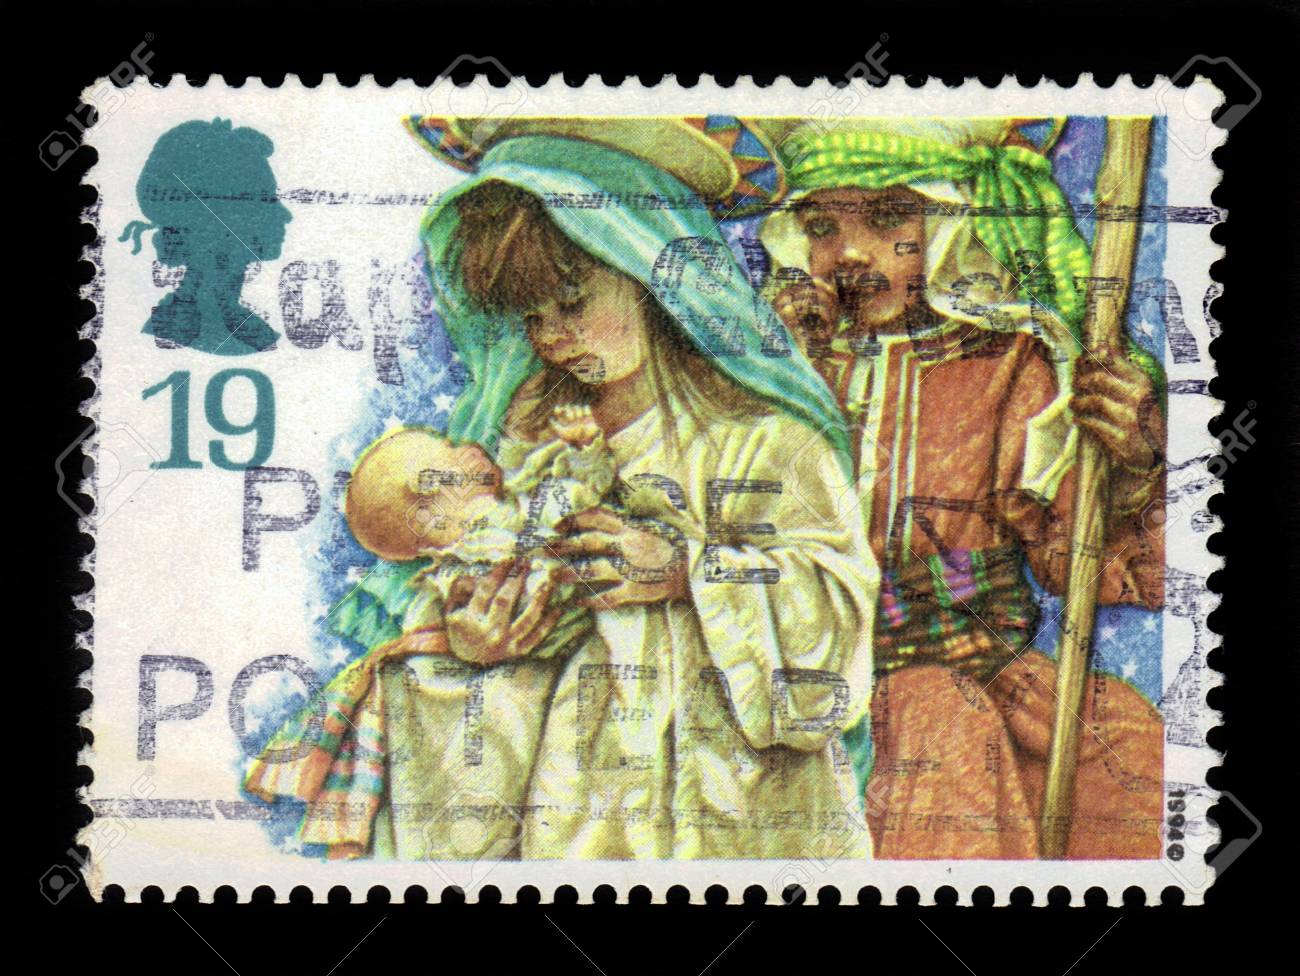 GREAT BRITAIN - CIRCA 1994  a stamp printed in the Great Britain shows Christmas  Children s Nativity Plays - Virgin Mary and Joseph, Christmas Card, circa 1994 Stock Photo - 21595578